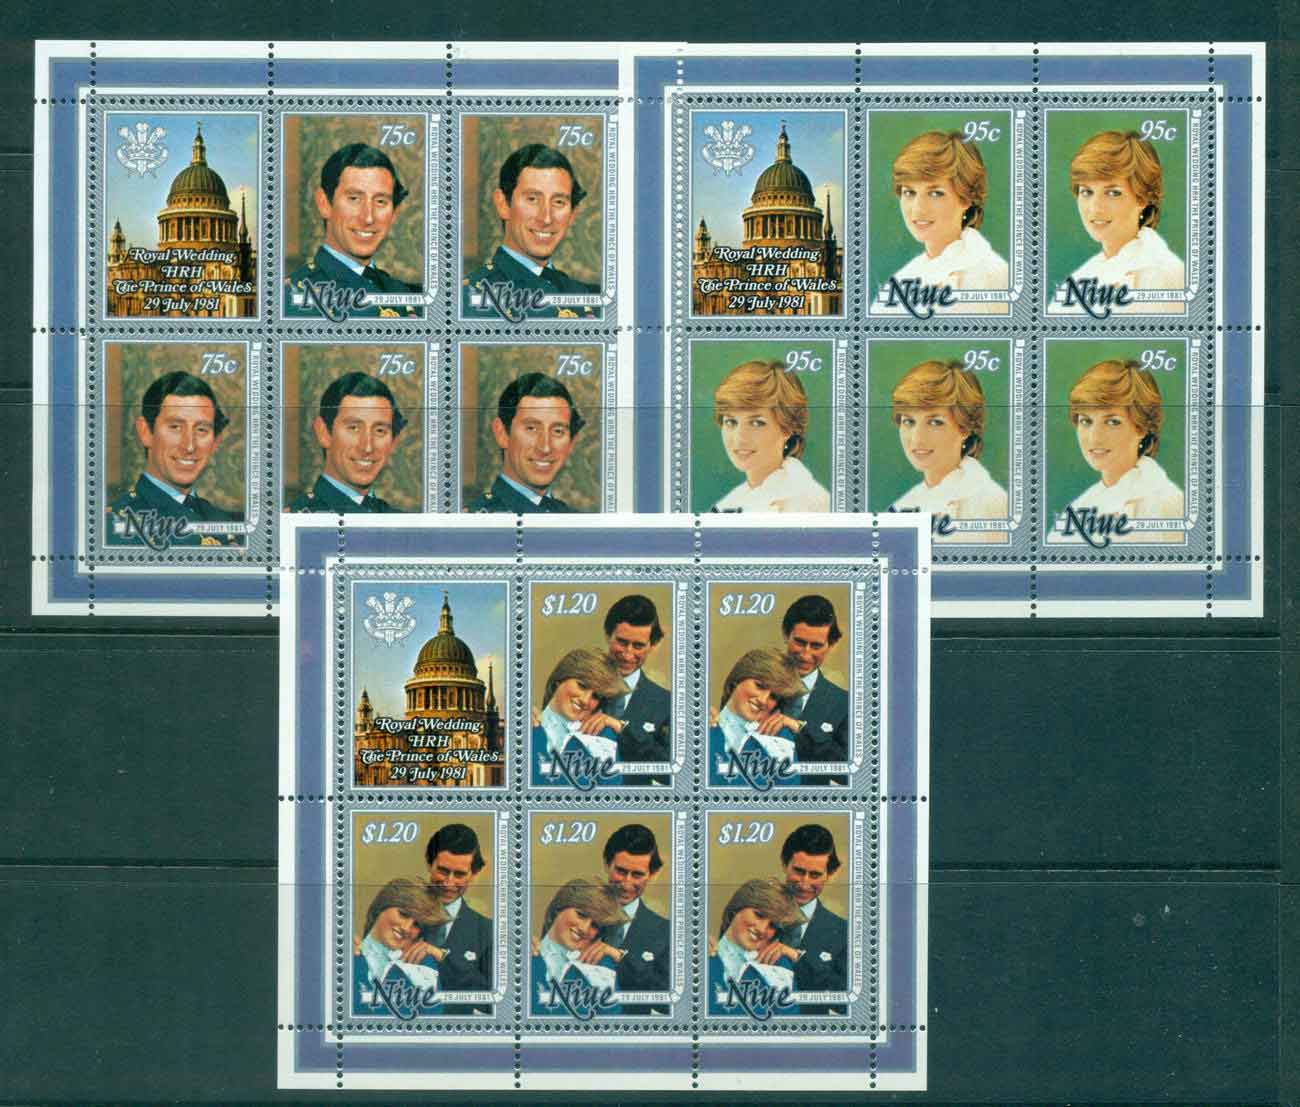 Niue 1981 Charles & Diana Wedding 3x Sheetlets MUH Lot45131